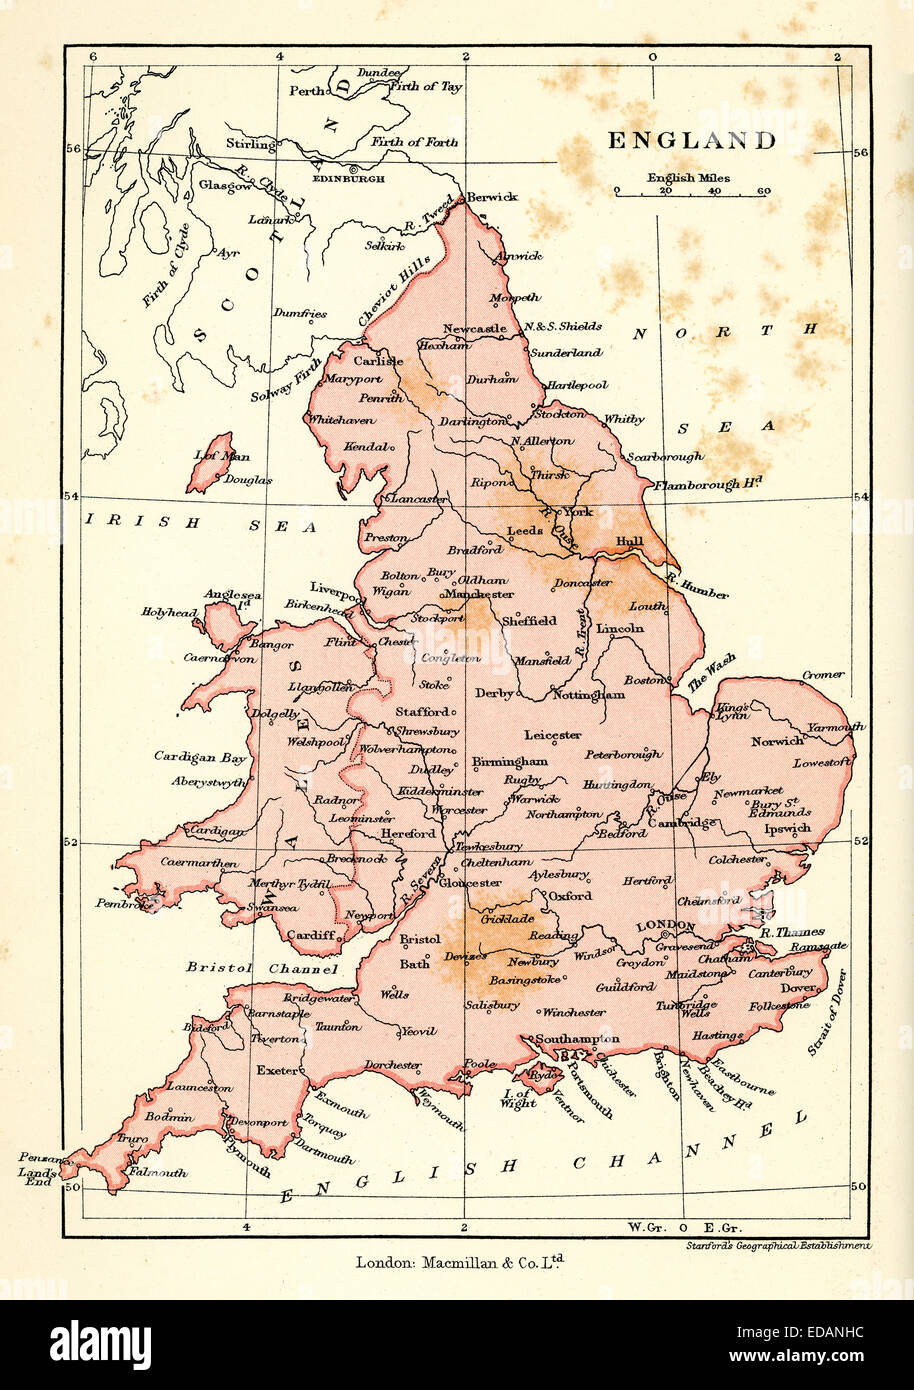 Antique map of England and Wales, 1900 - Stock Image